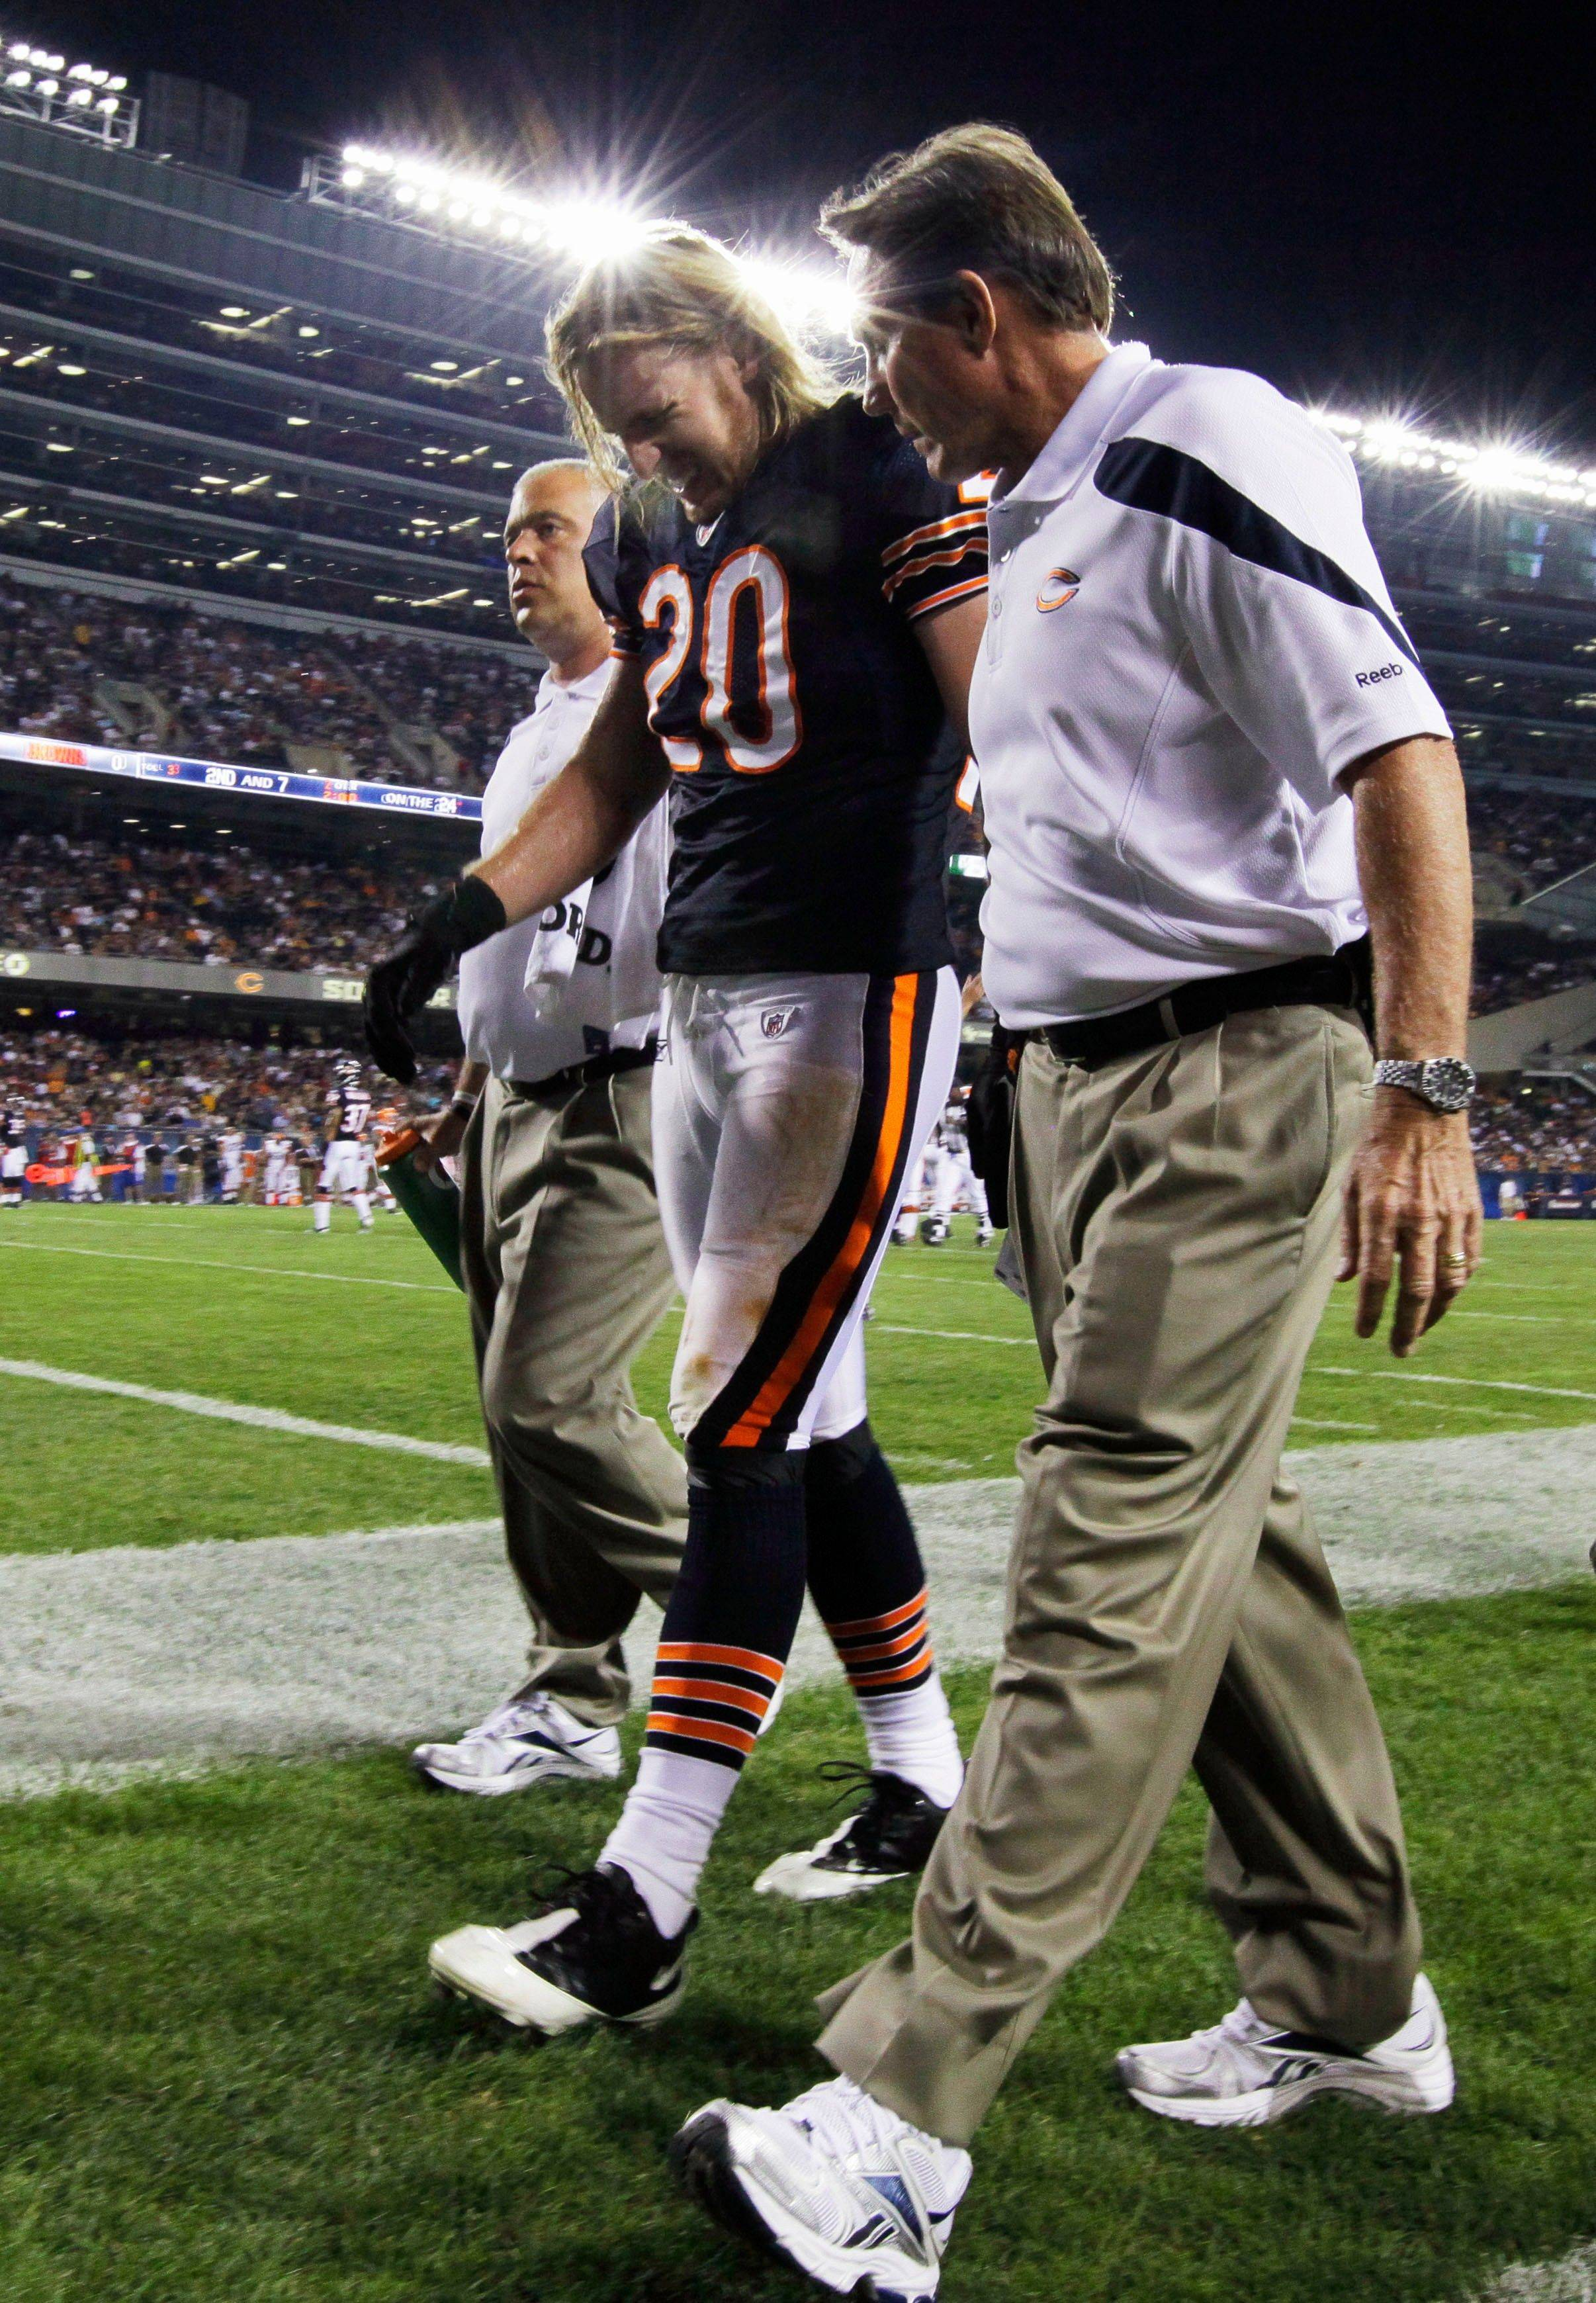 Chicago Bears safety Craig Steltz is helped from the field after getting injured in the first half .